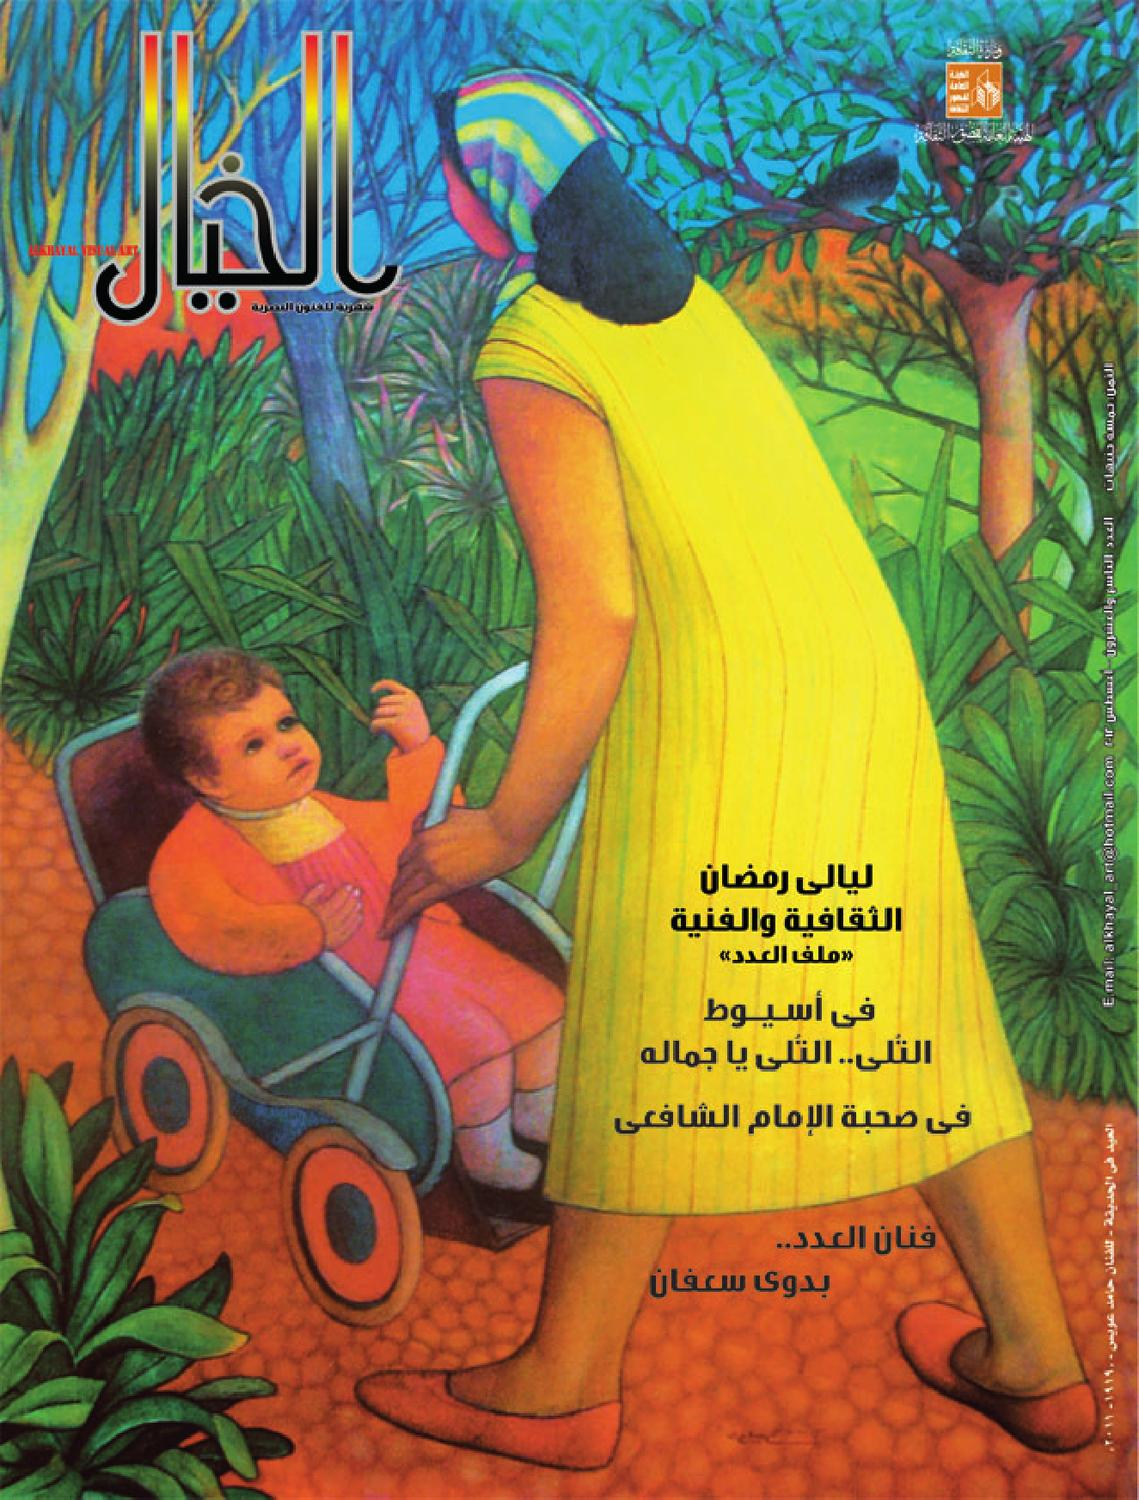 04b83e99a Khayal 29 by Mohamed Mokhtar - issuu